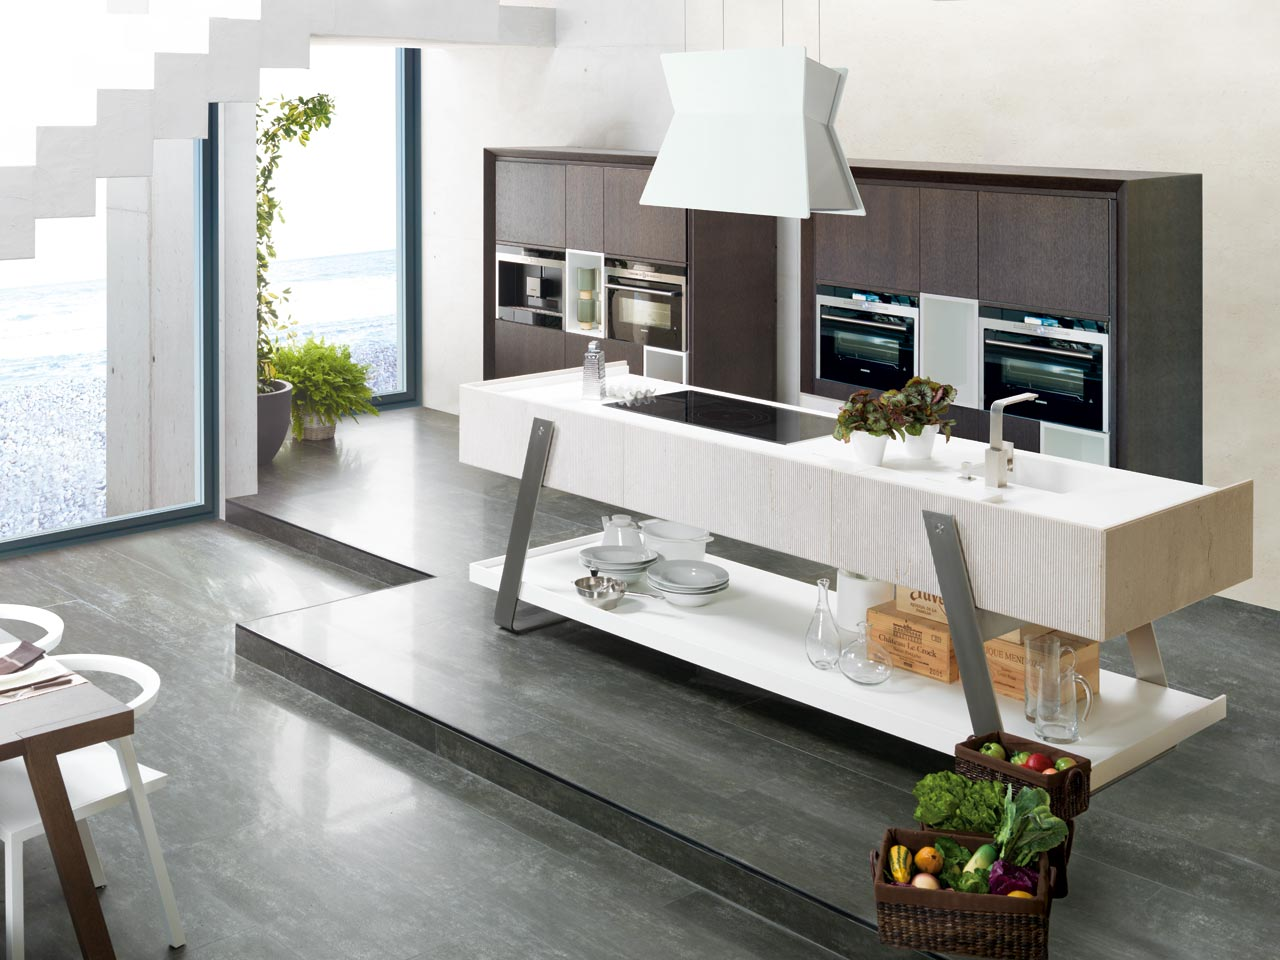 Cocina style contemporaneo color marron blanco gris for Baldosas cocina porcelanosa